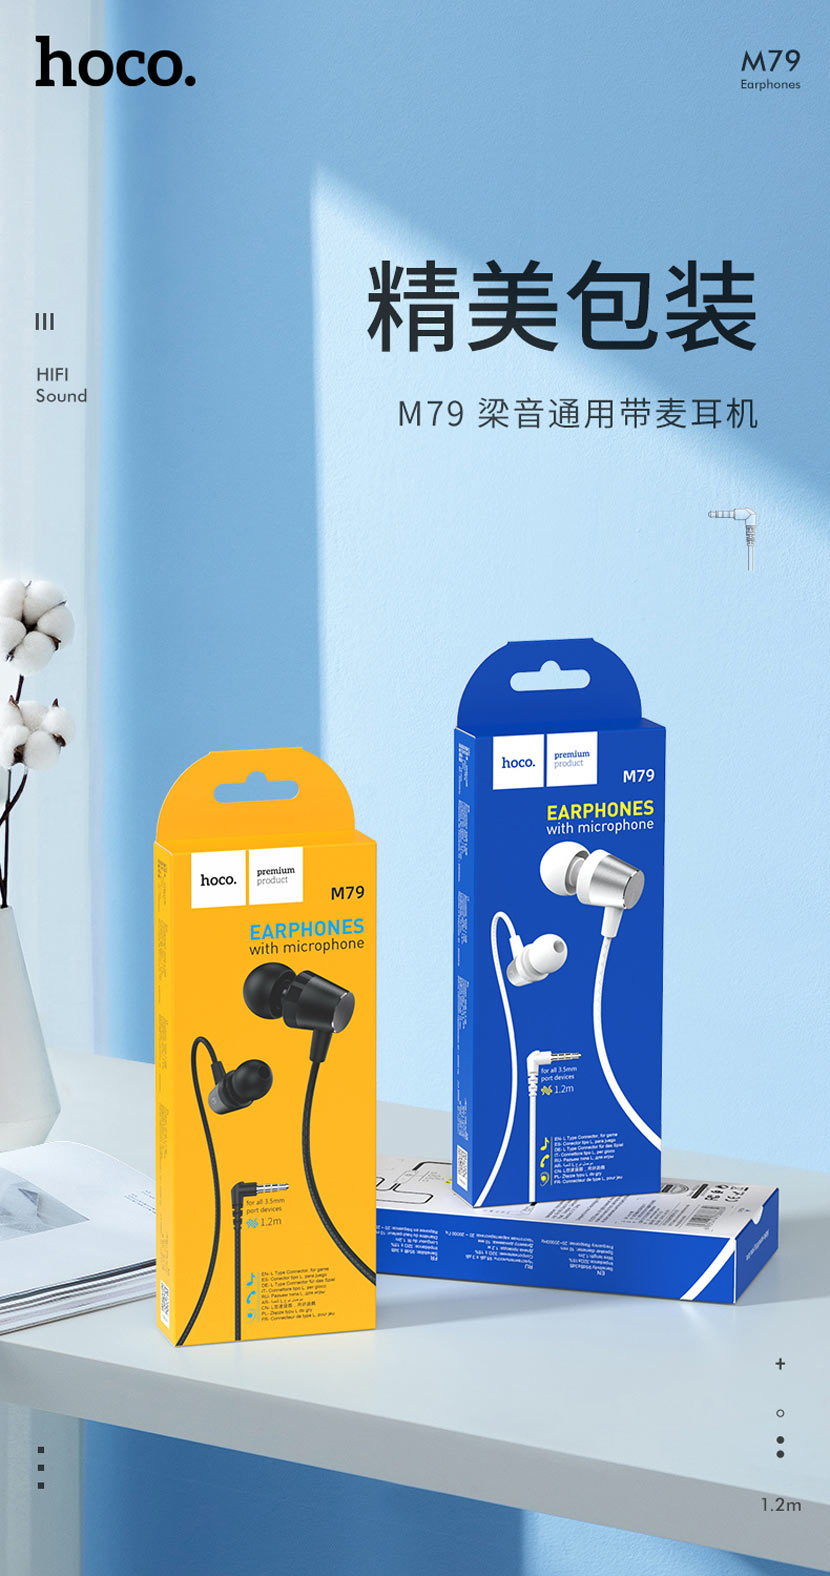 hoco news m79 cresta universal earphones with microphone package cn